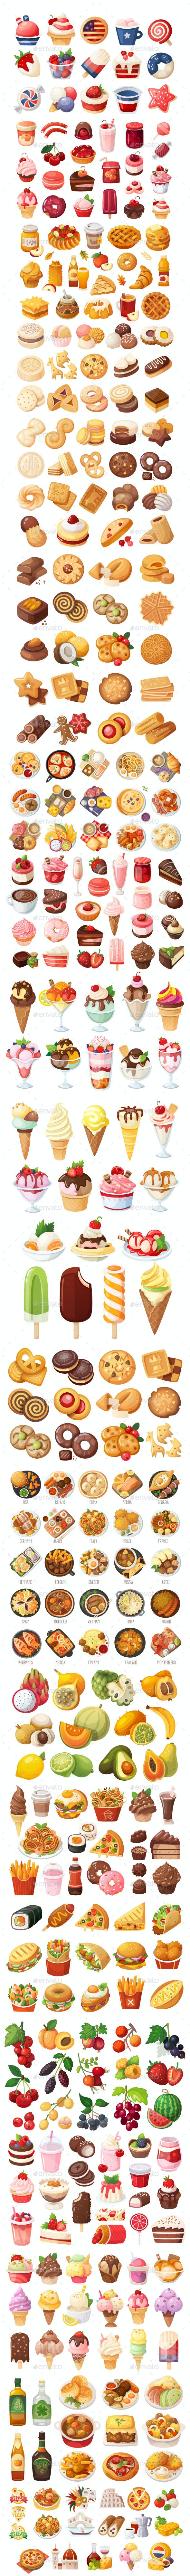 Food Vector Set - Food Objects